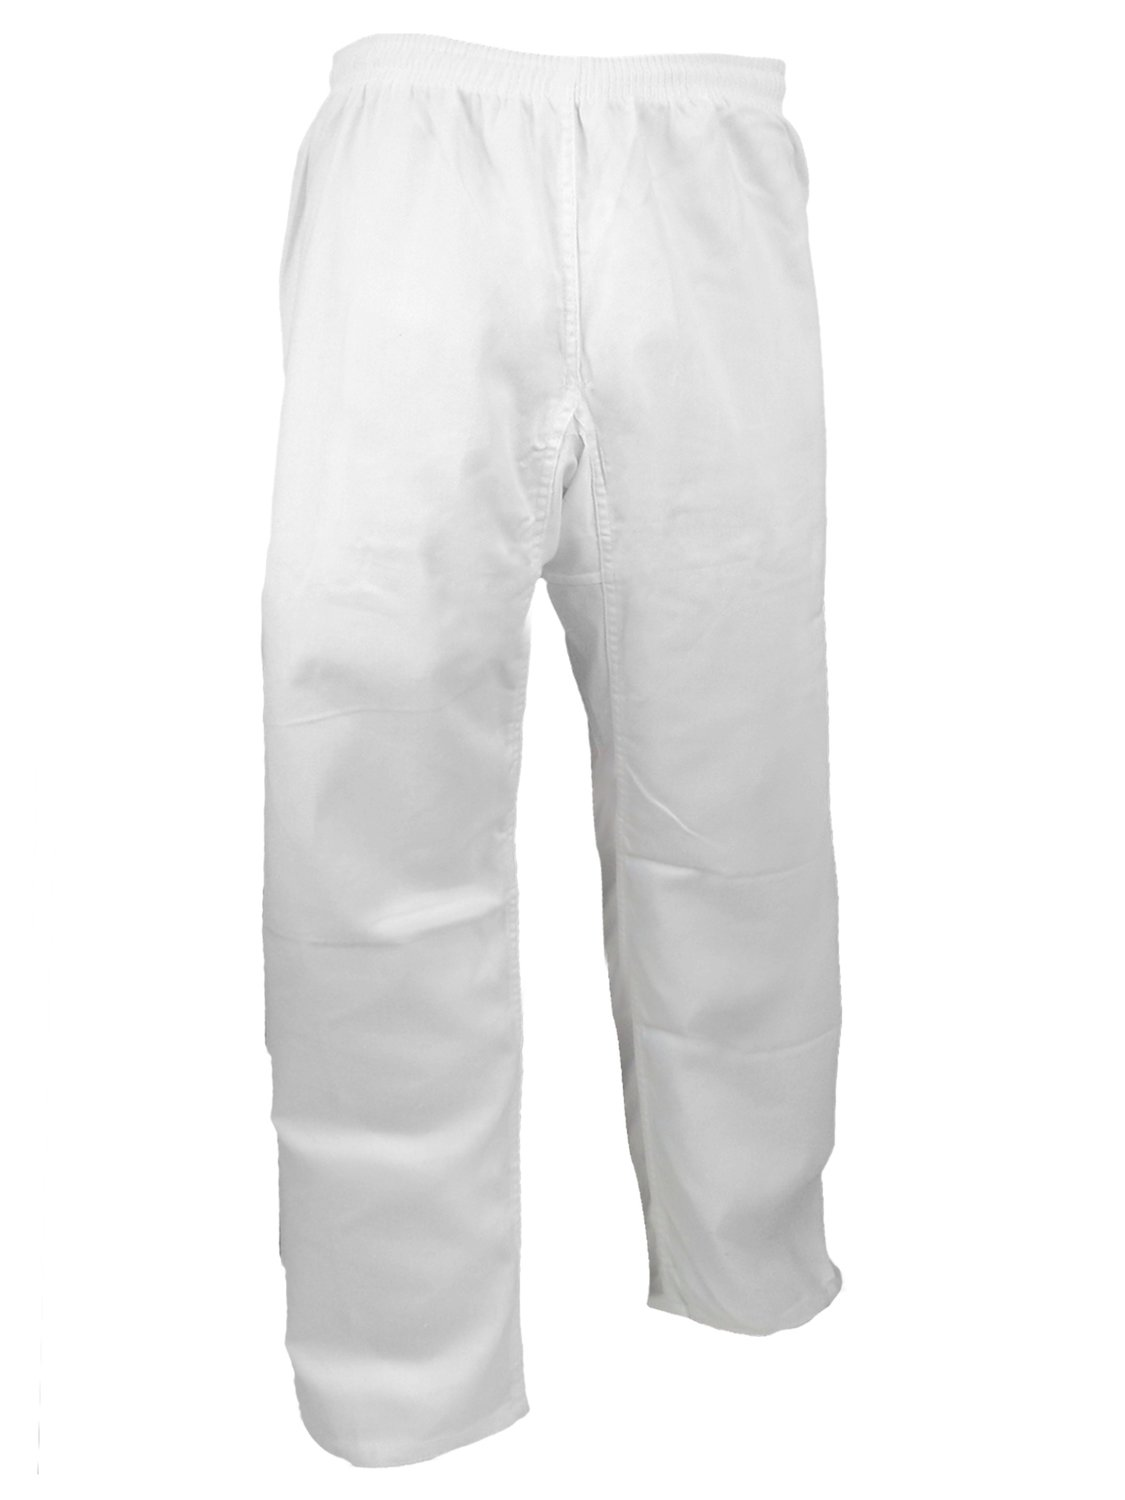 Karate Uniform, Pants, Medium Weight, White